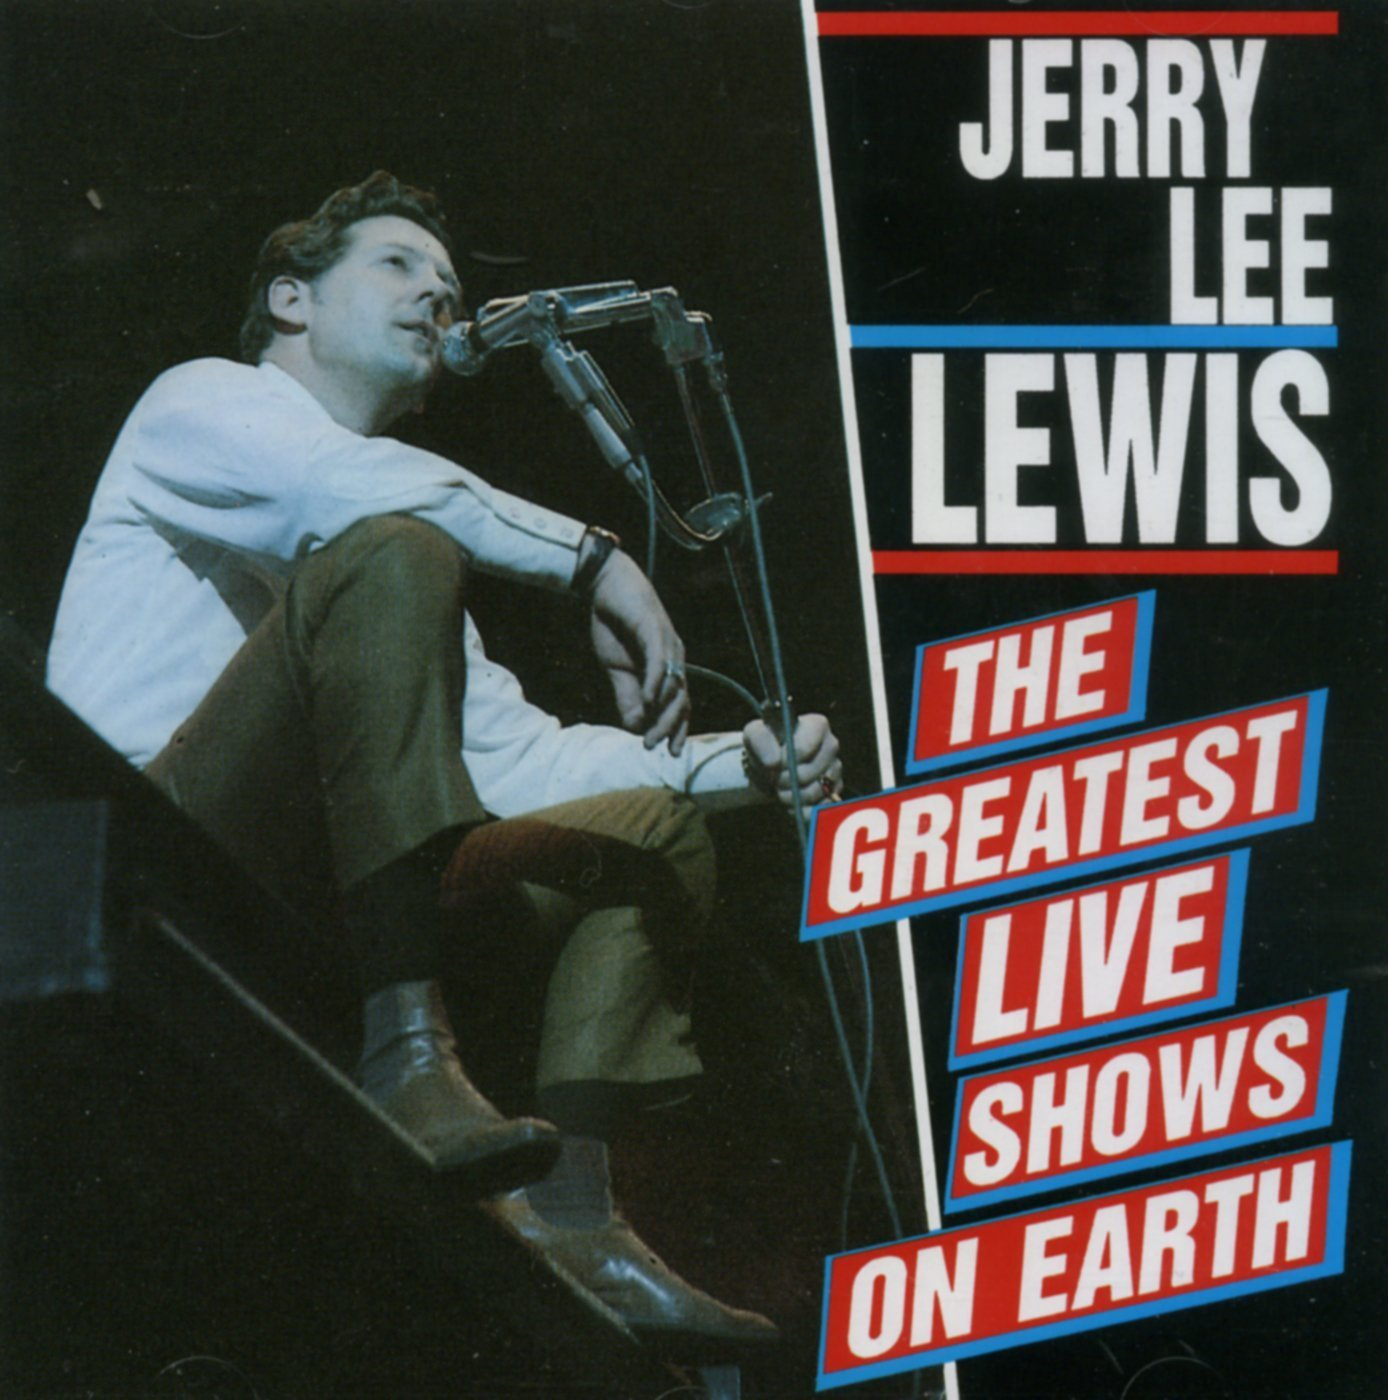 Jerry Lee Lewis - The Greatest Live Shows on Earth by Imports